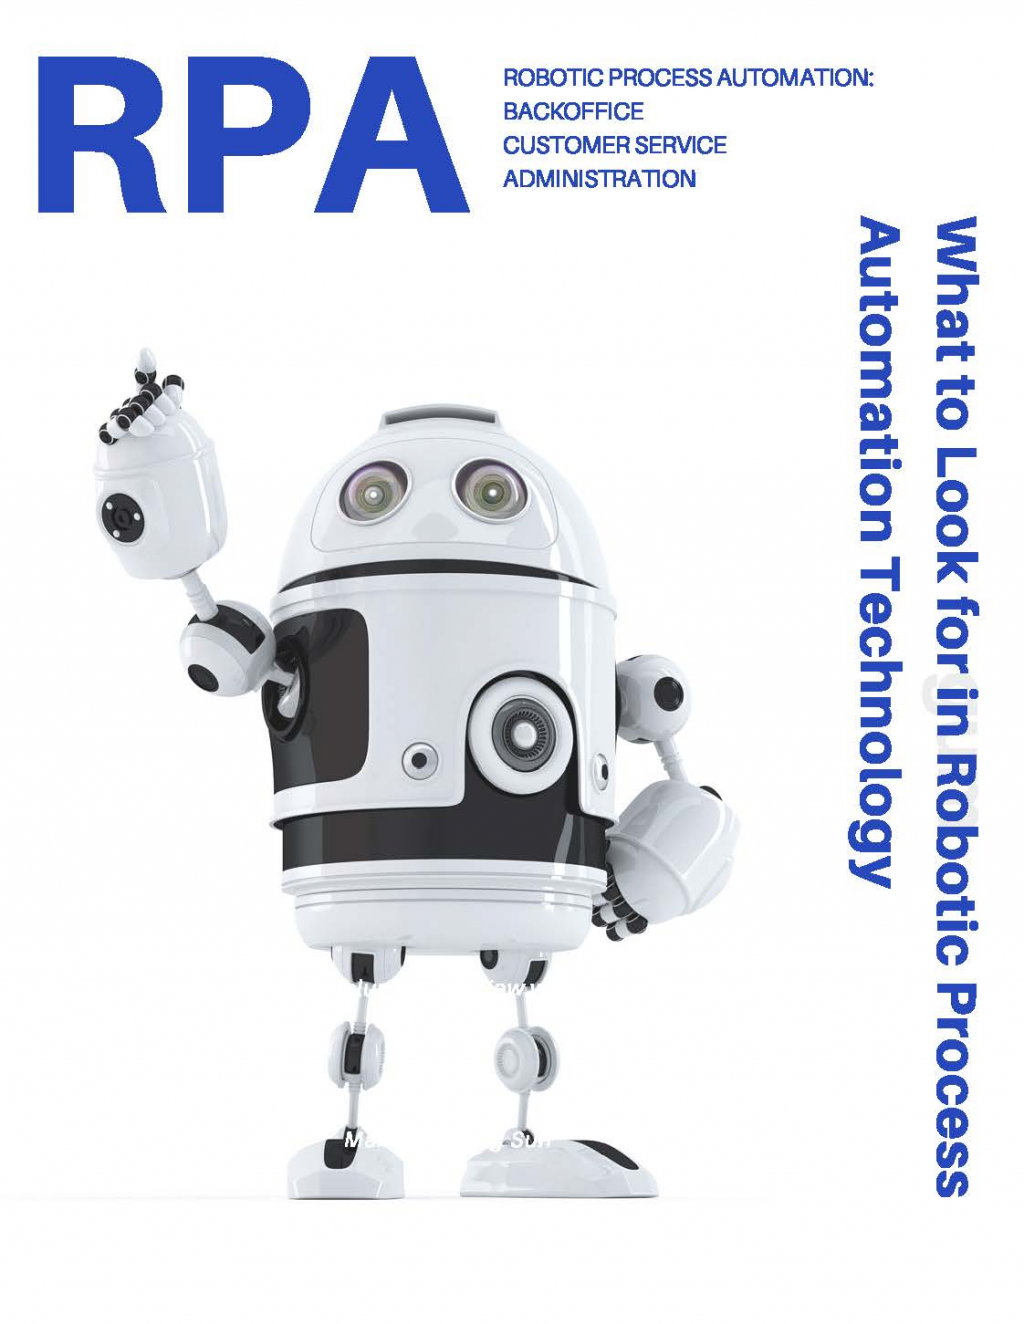 What to look for in Robotic Process Automation Technology?